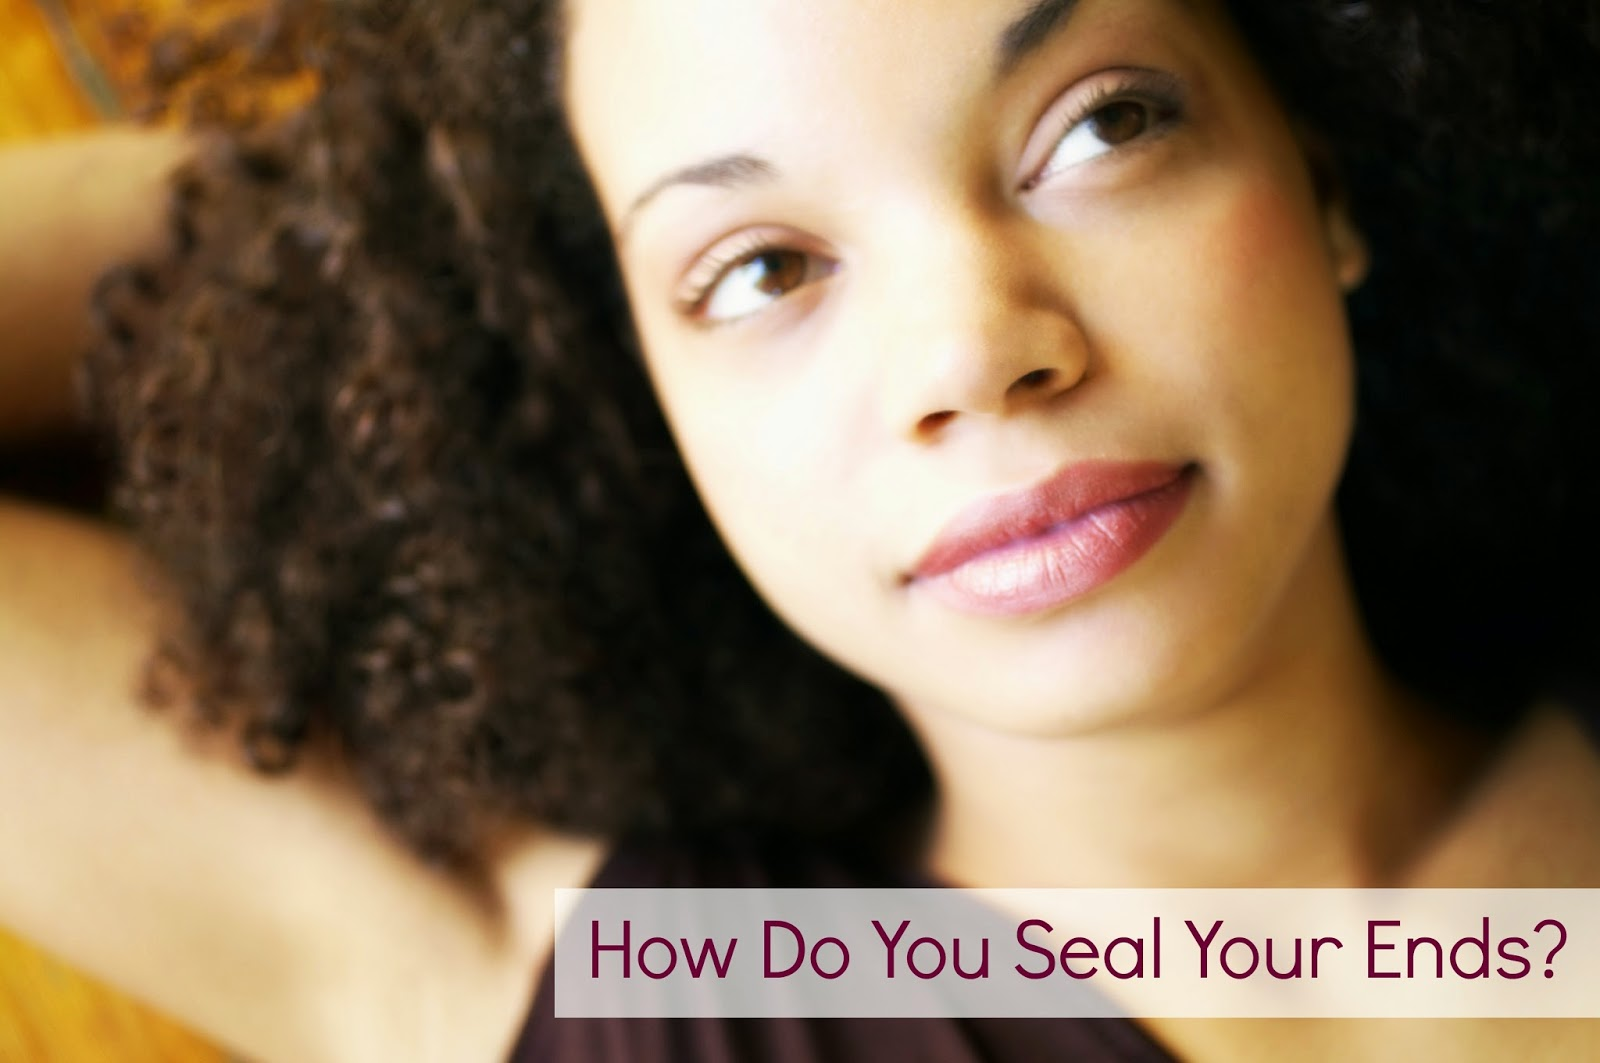 How Do You Seal Your Ends?